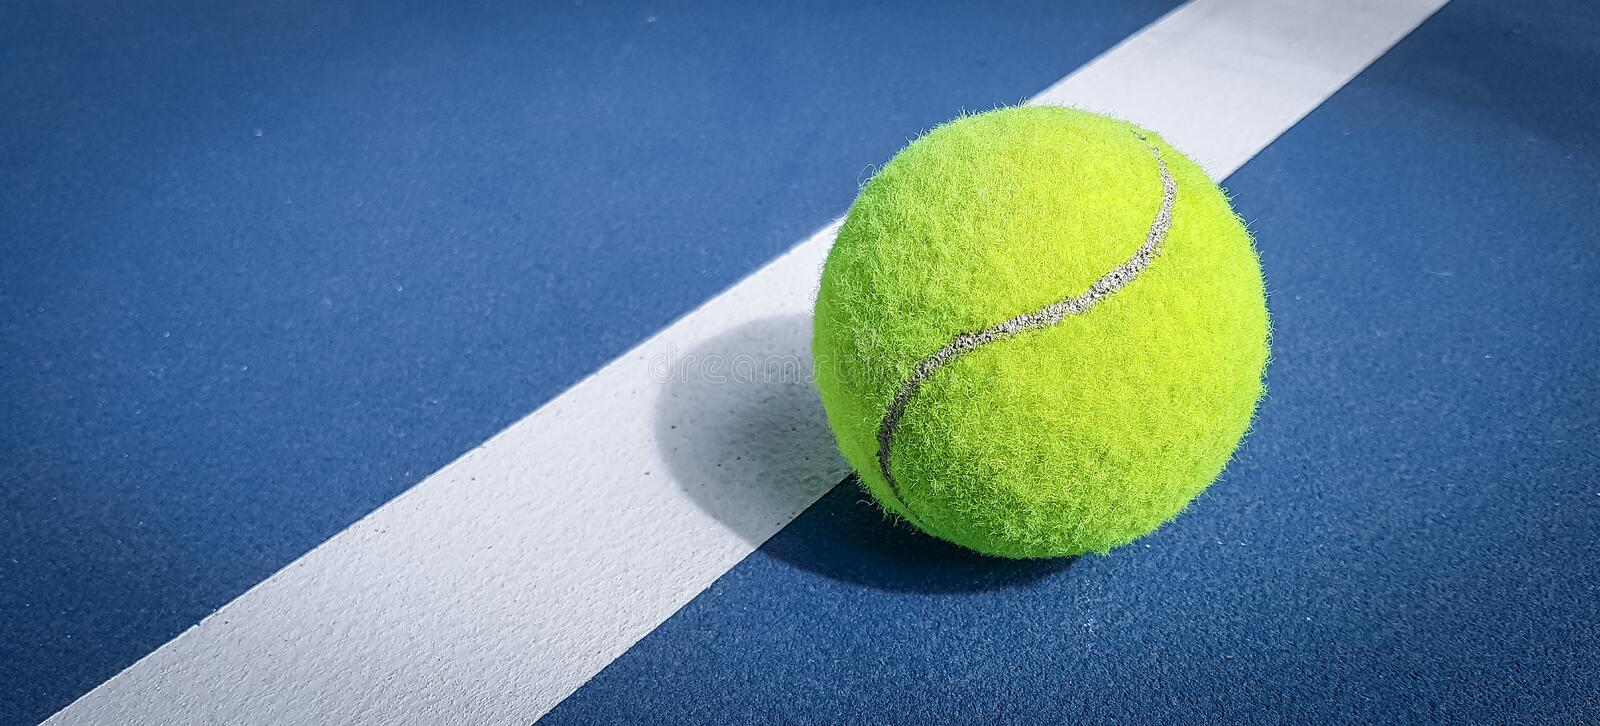 A close-up of the tennis ball on the court. The blue background is a beautiful illustration and background. Close-up shots of tenn royalty free stock photography